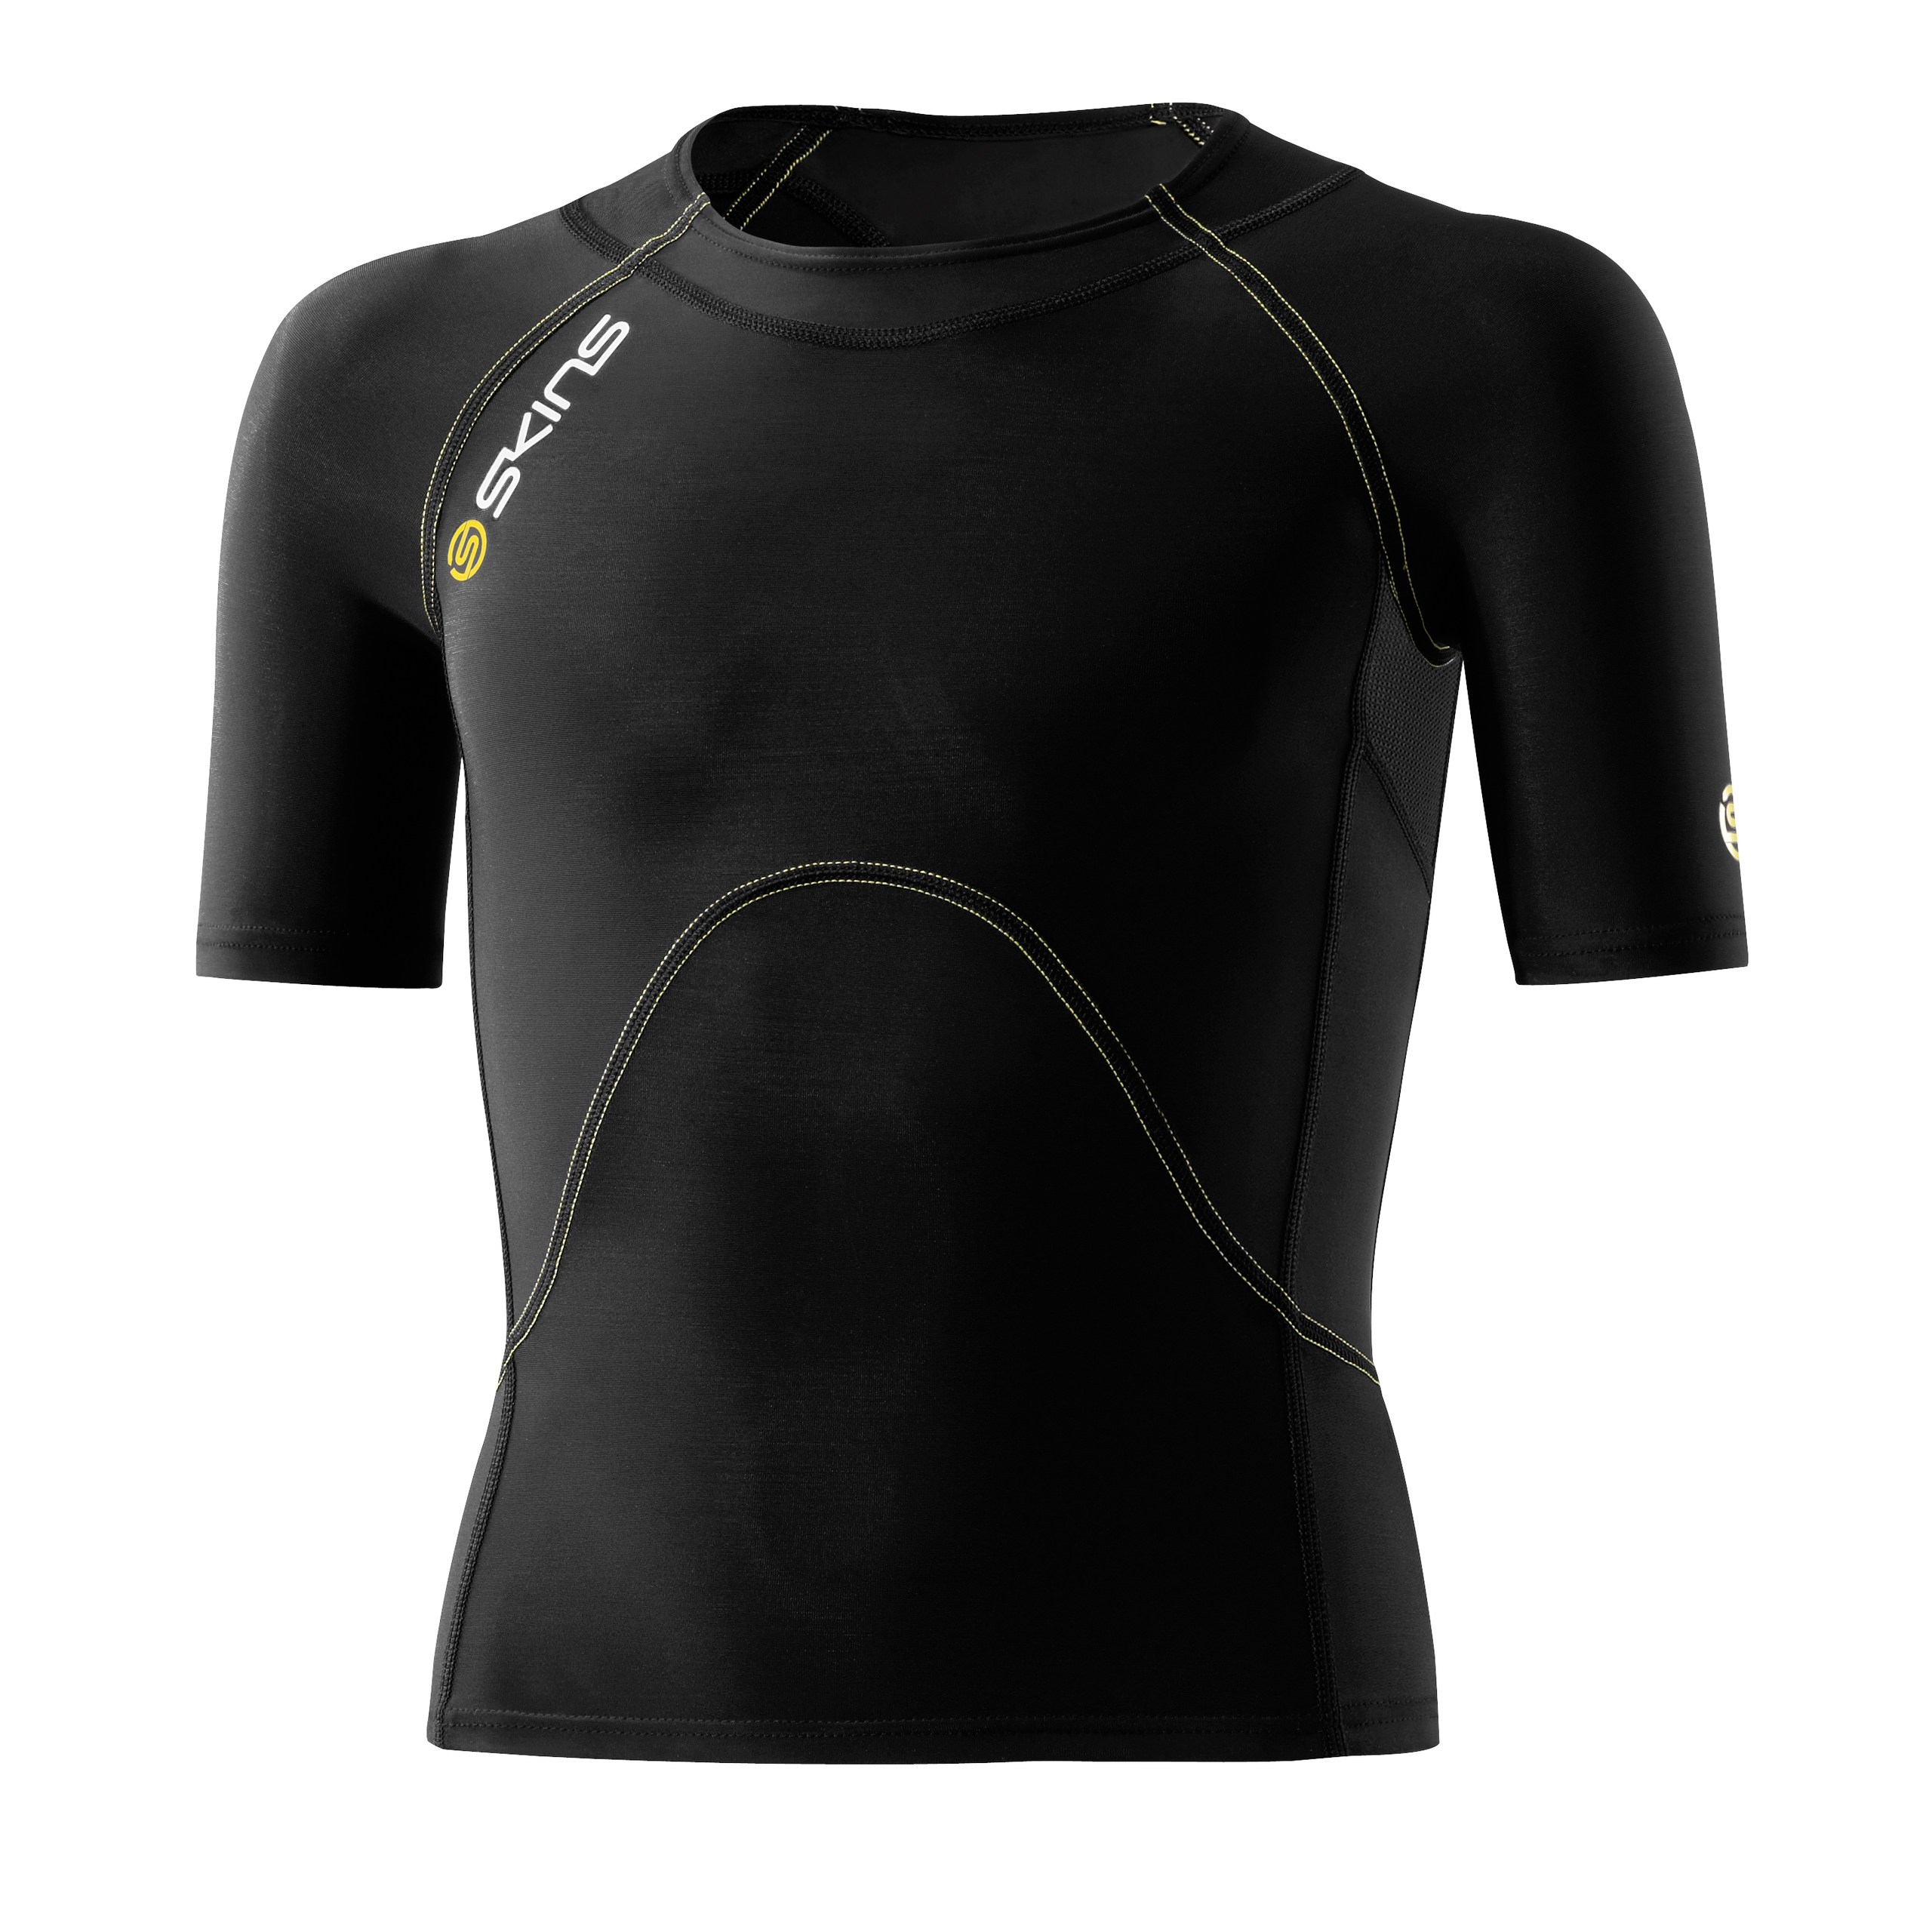 Skins A400 Active Short Sleeve Top - Black/Yellow - Kids